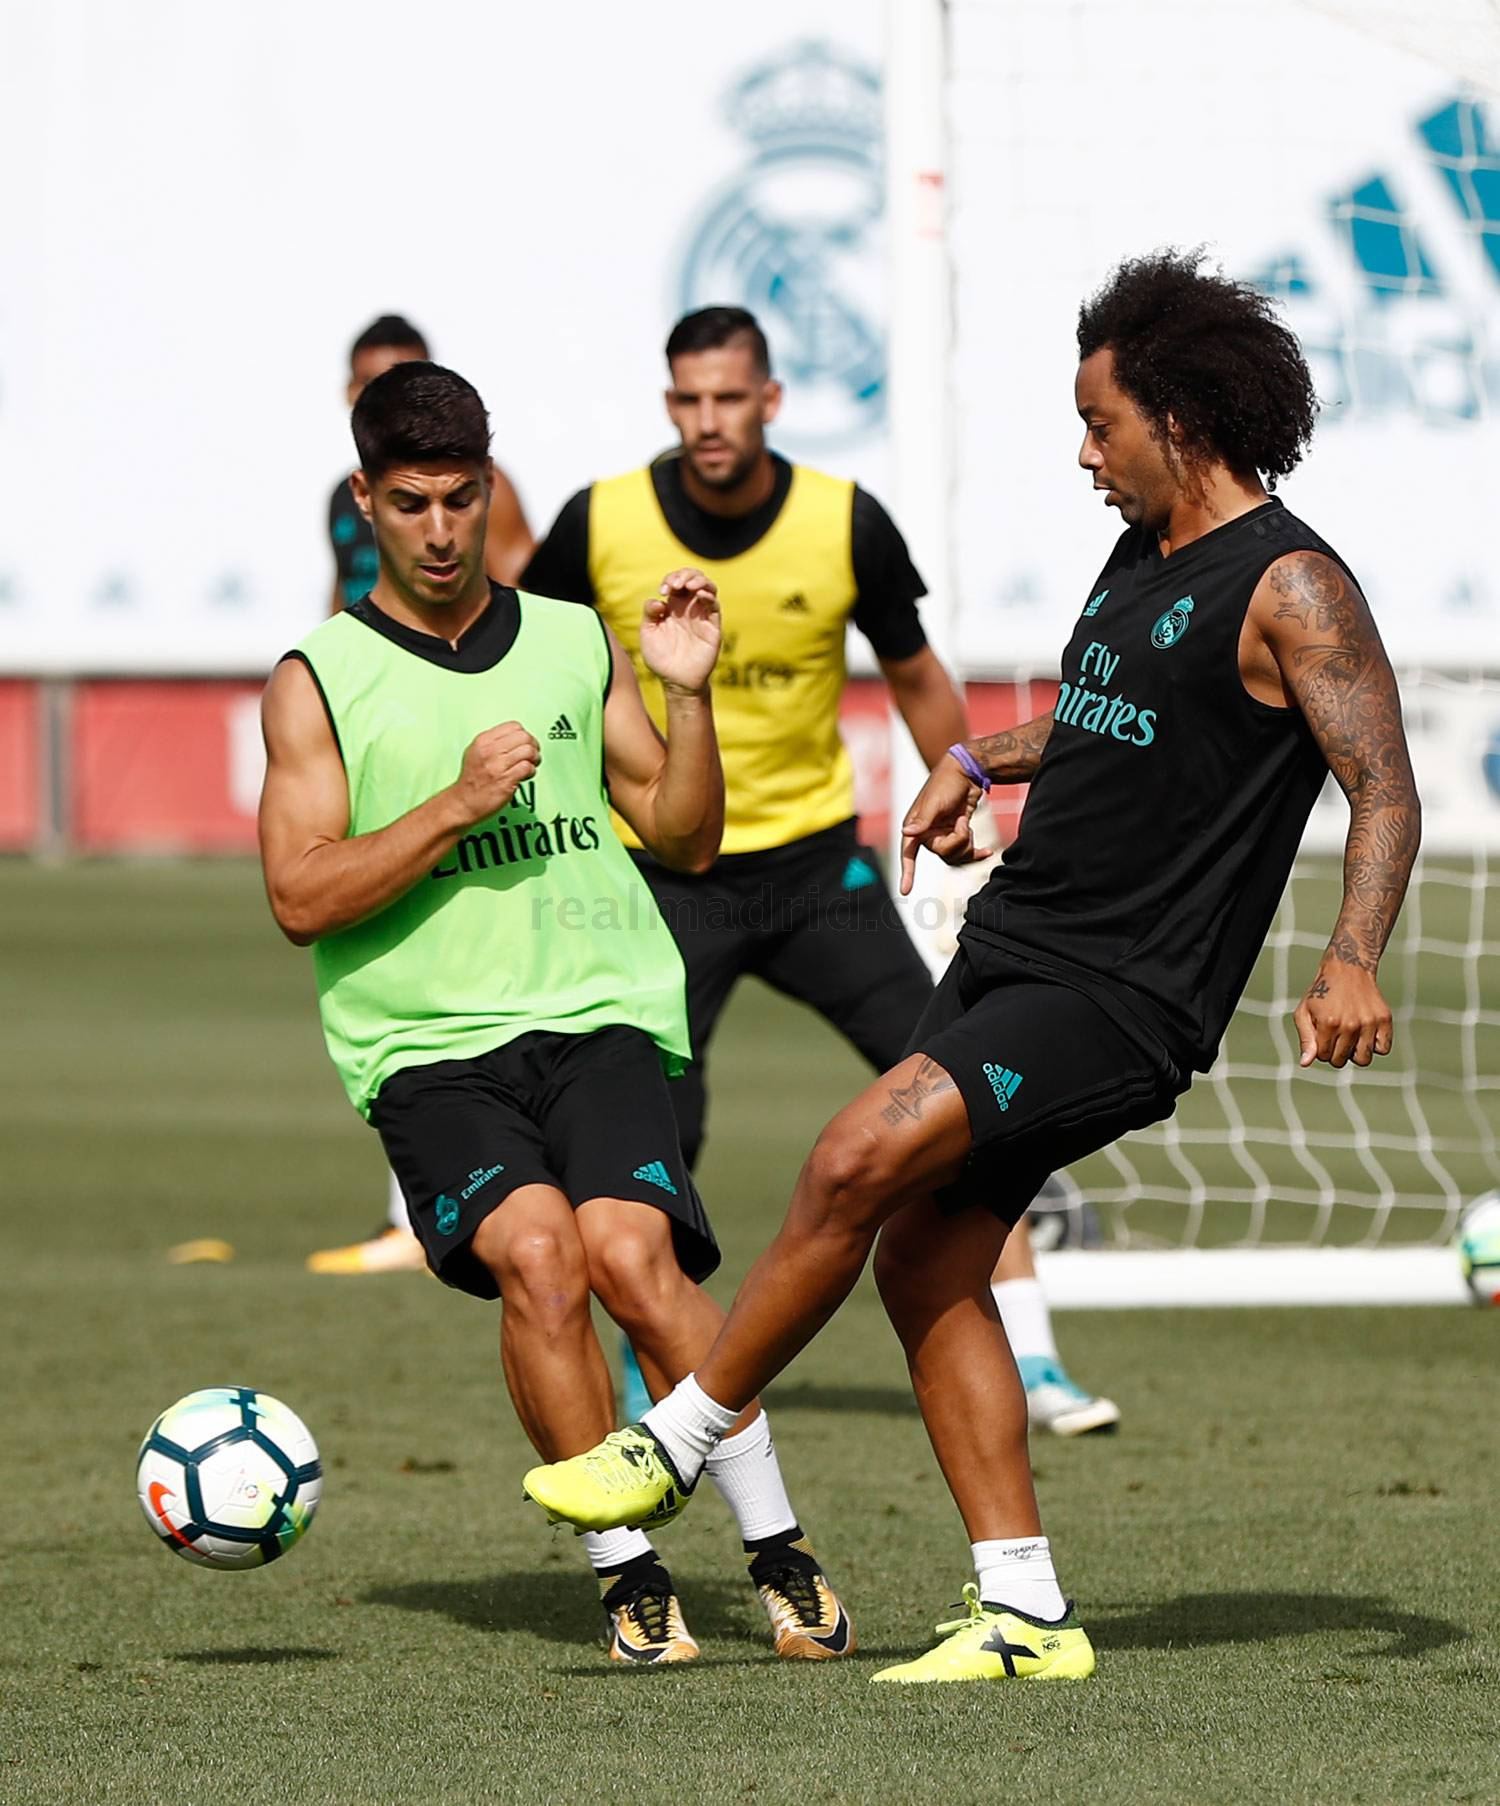 Real Madrid - Entrenamiento del Real Madrid - 26-08-2017